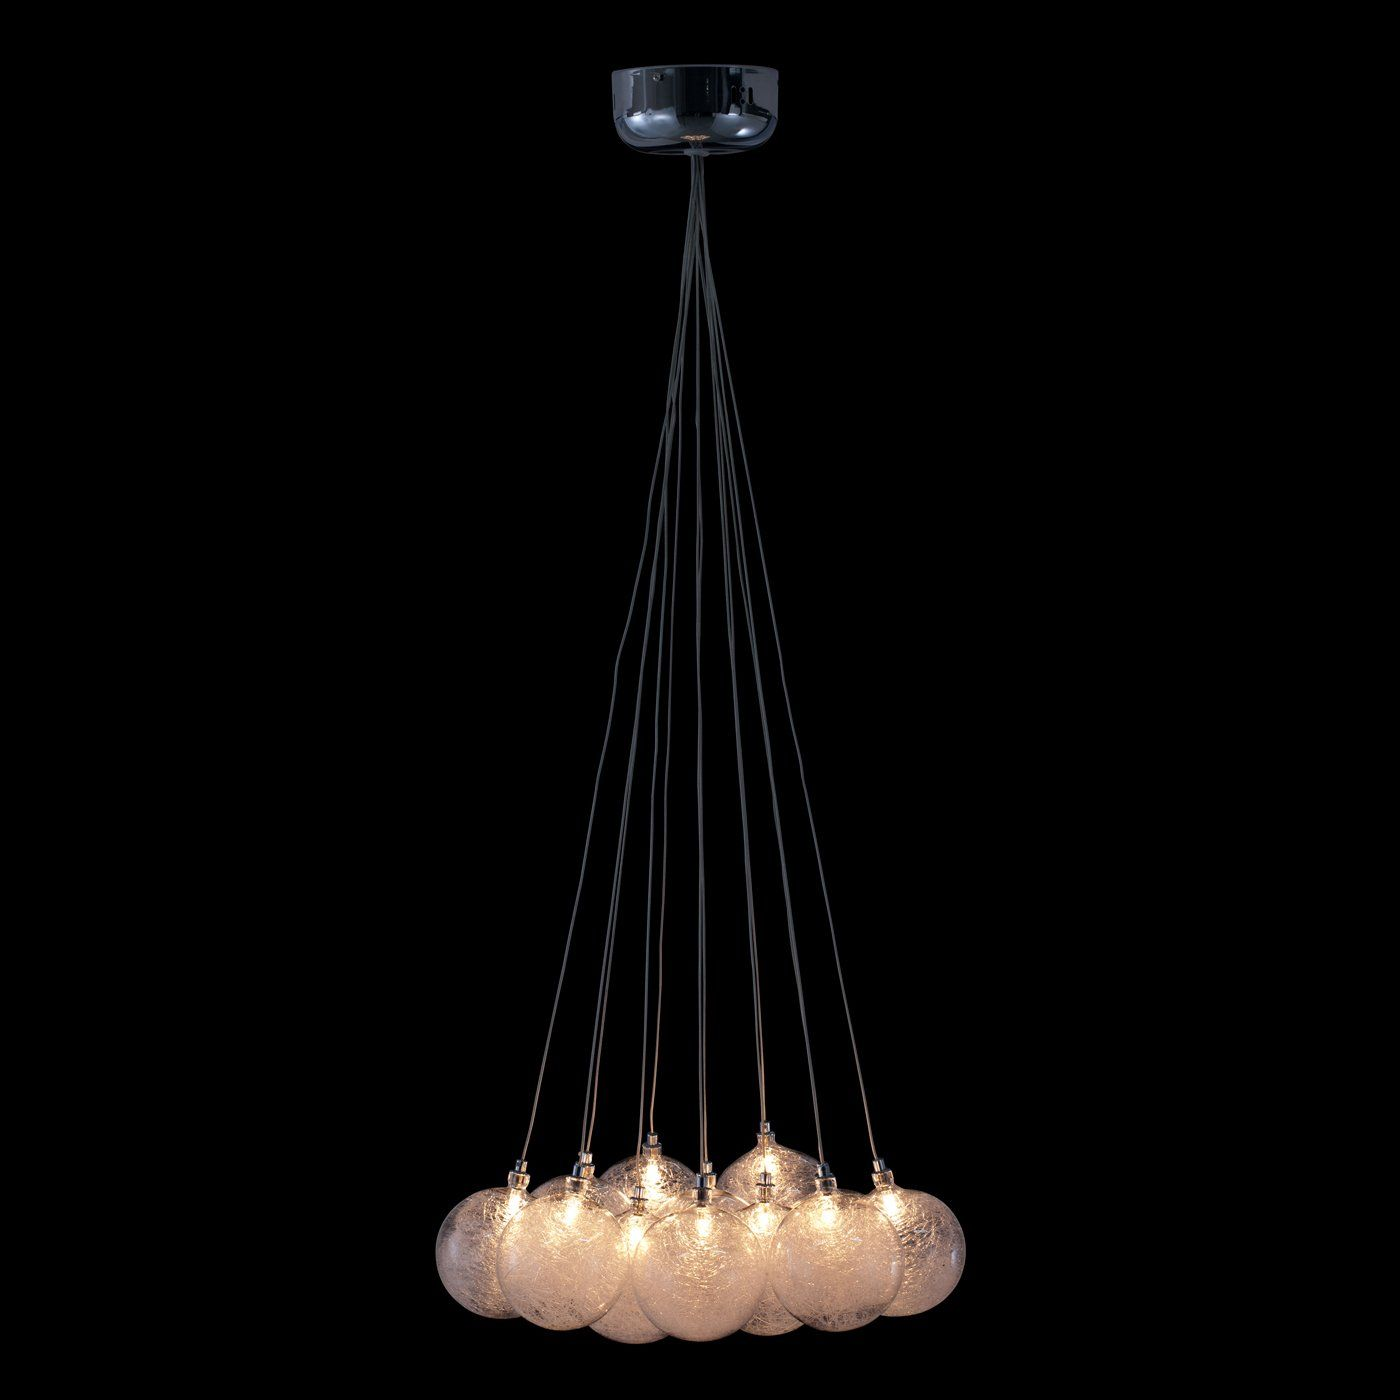 Shop zuo modern 50100 cosmos ceiling lamp at lowes canada find our shop zuo modern 50100 cosmos ceiling lamp at lowes canada find our selection of pendant lights at the lowest price guaranteed with price match off aloadofball Images